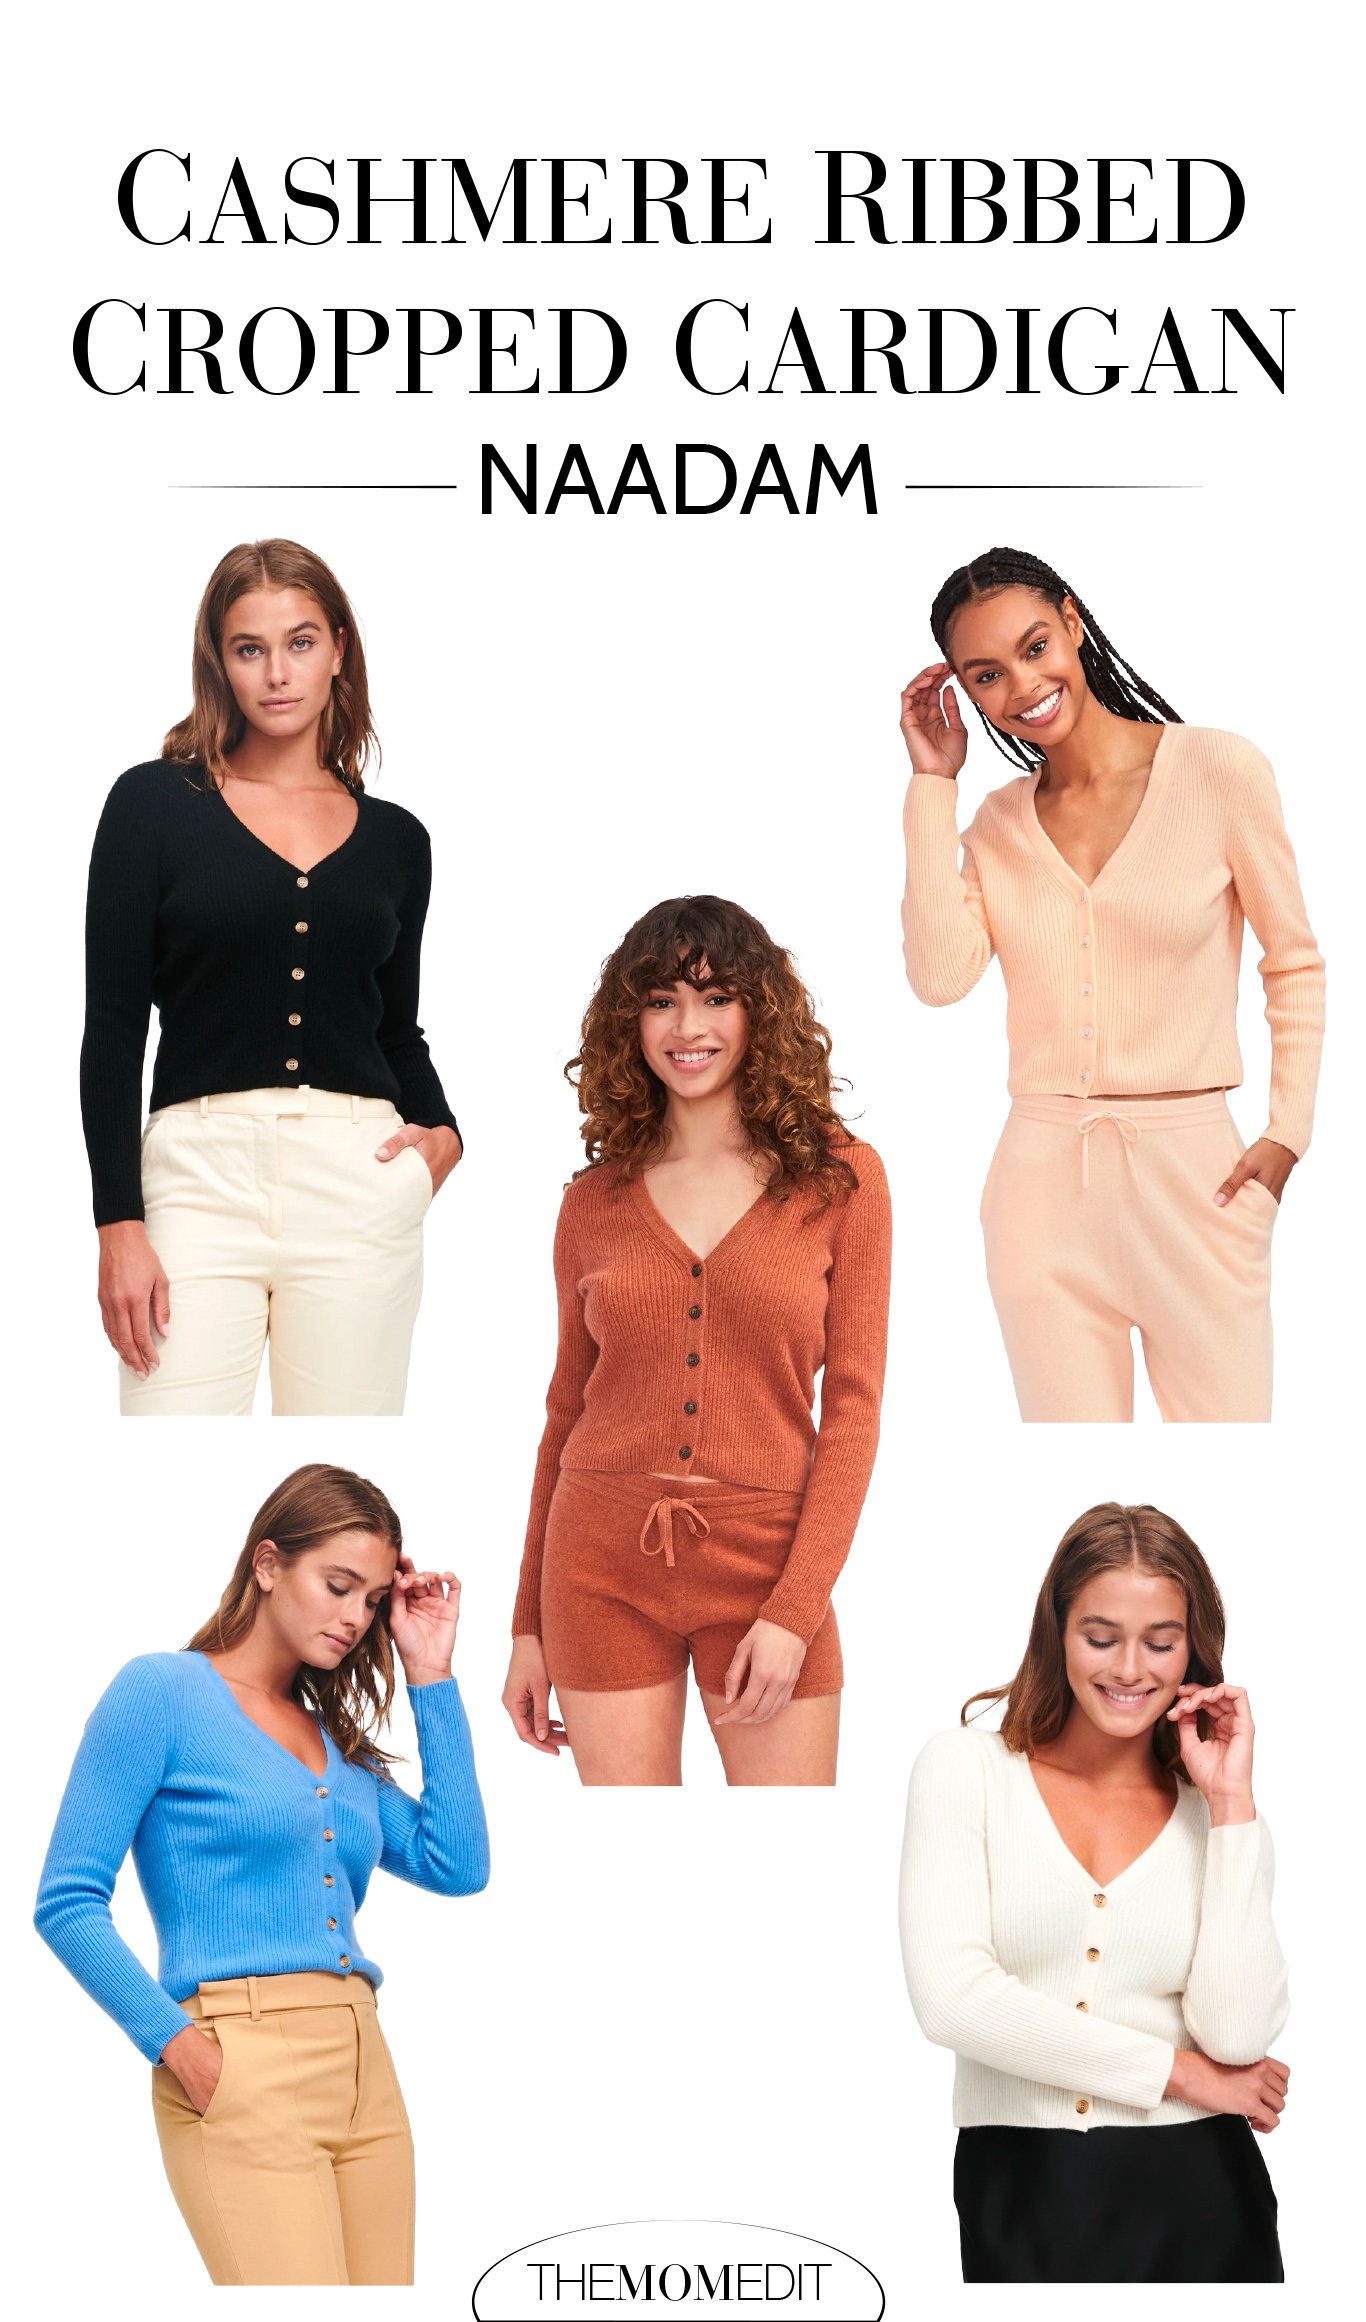 High-quality, flattering & versatile, the Naadam Cashmere Cropped Cardigan is in our forever closet & on nonstop rotation. Here are 3 reasons we love it.